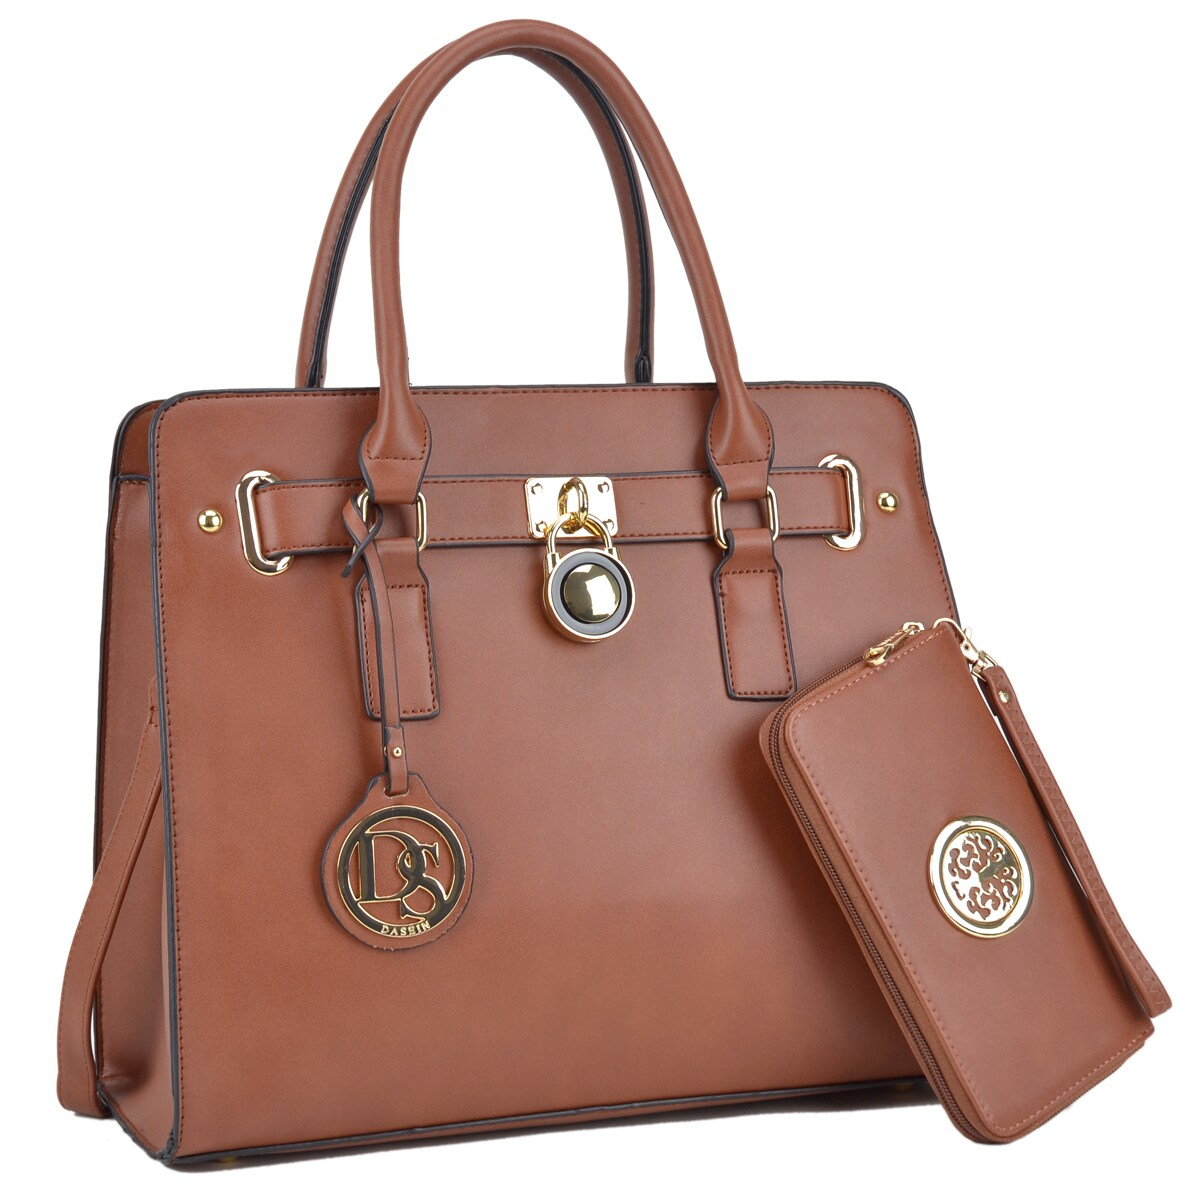 Dasein Large Saffiano Leather Padlock Satchel Handbag With Matching Wallet Free Shipping Today 17698244